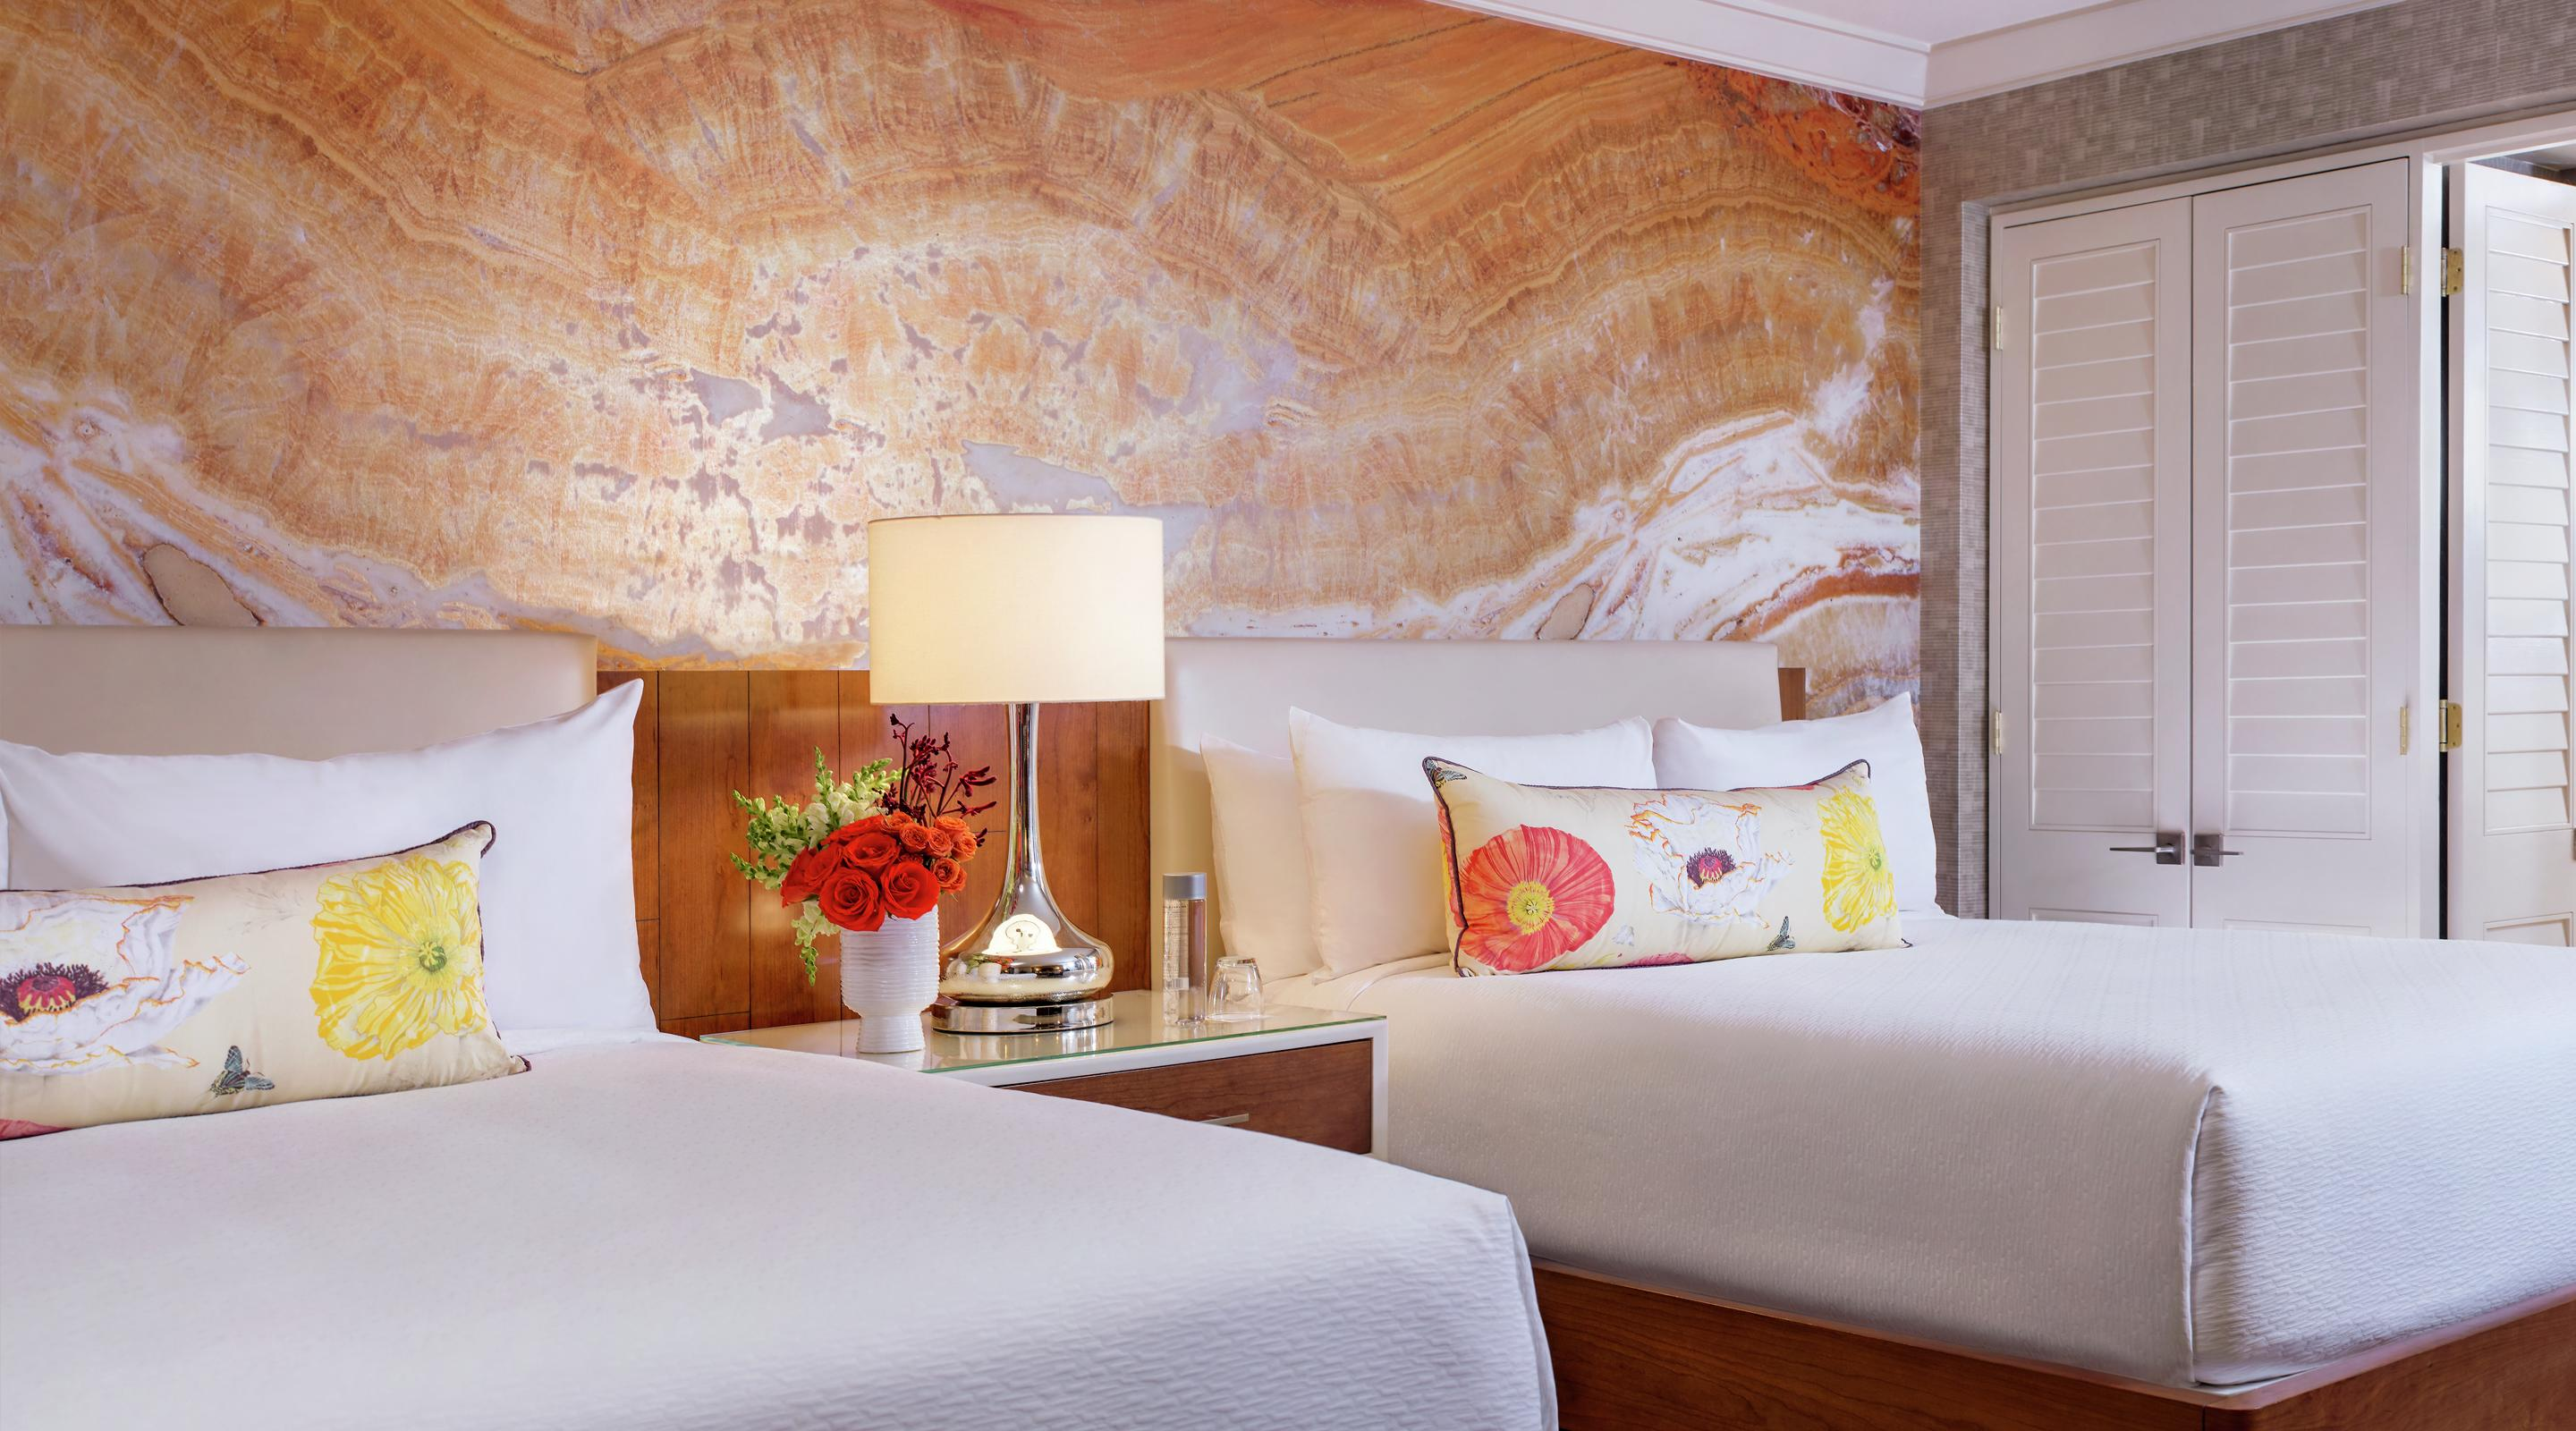 Our newly remodeled 550 square foot Resort Queen room is the perfect blend of comfort and style.